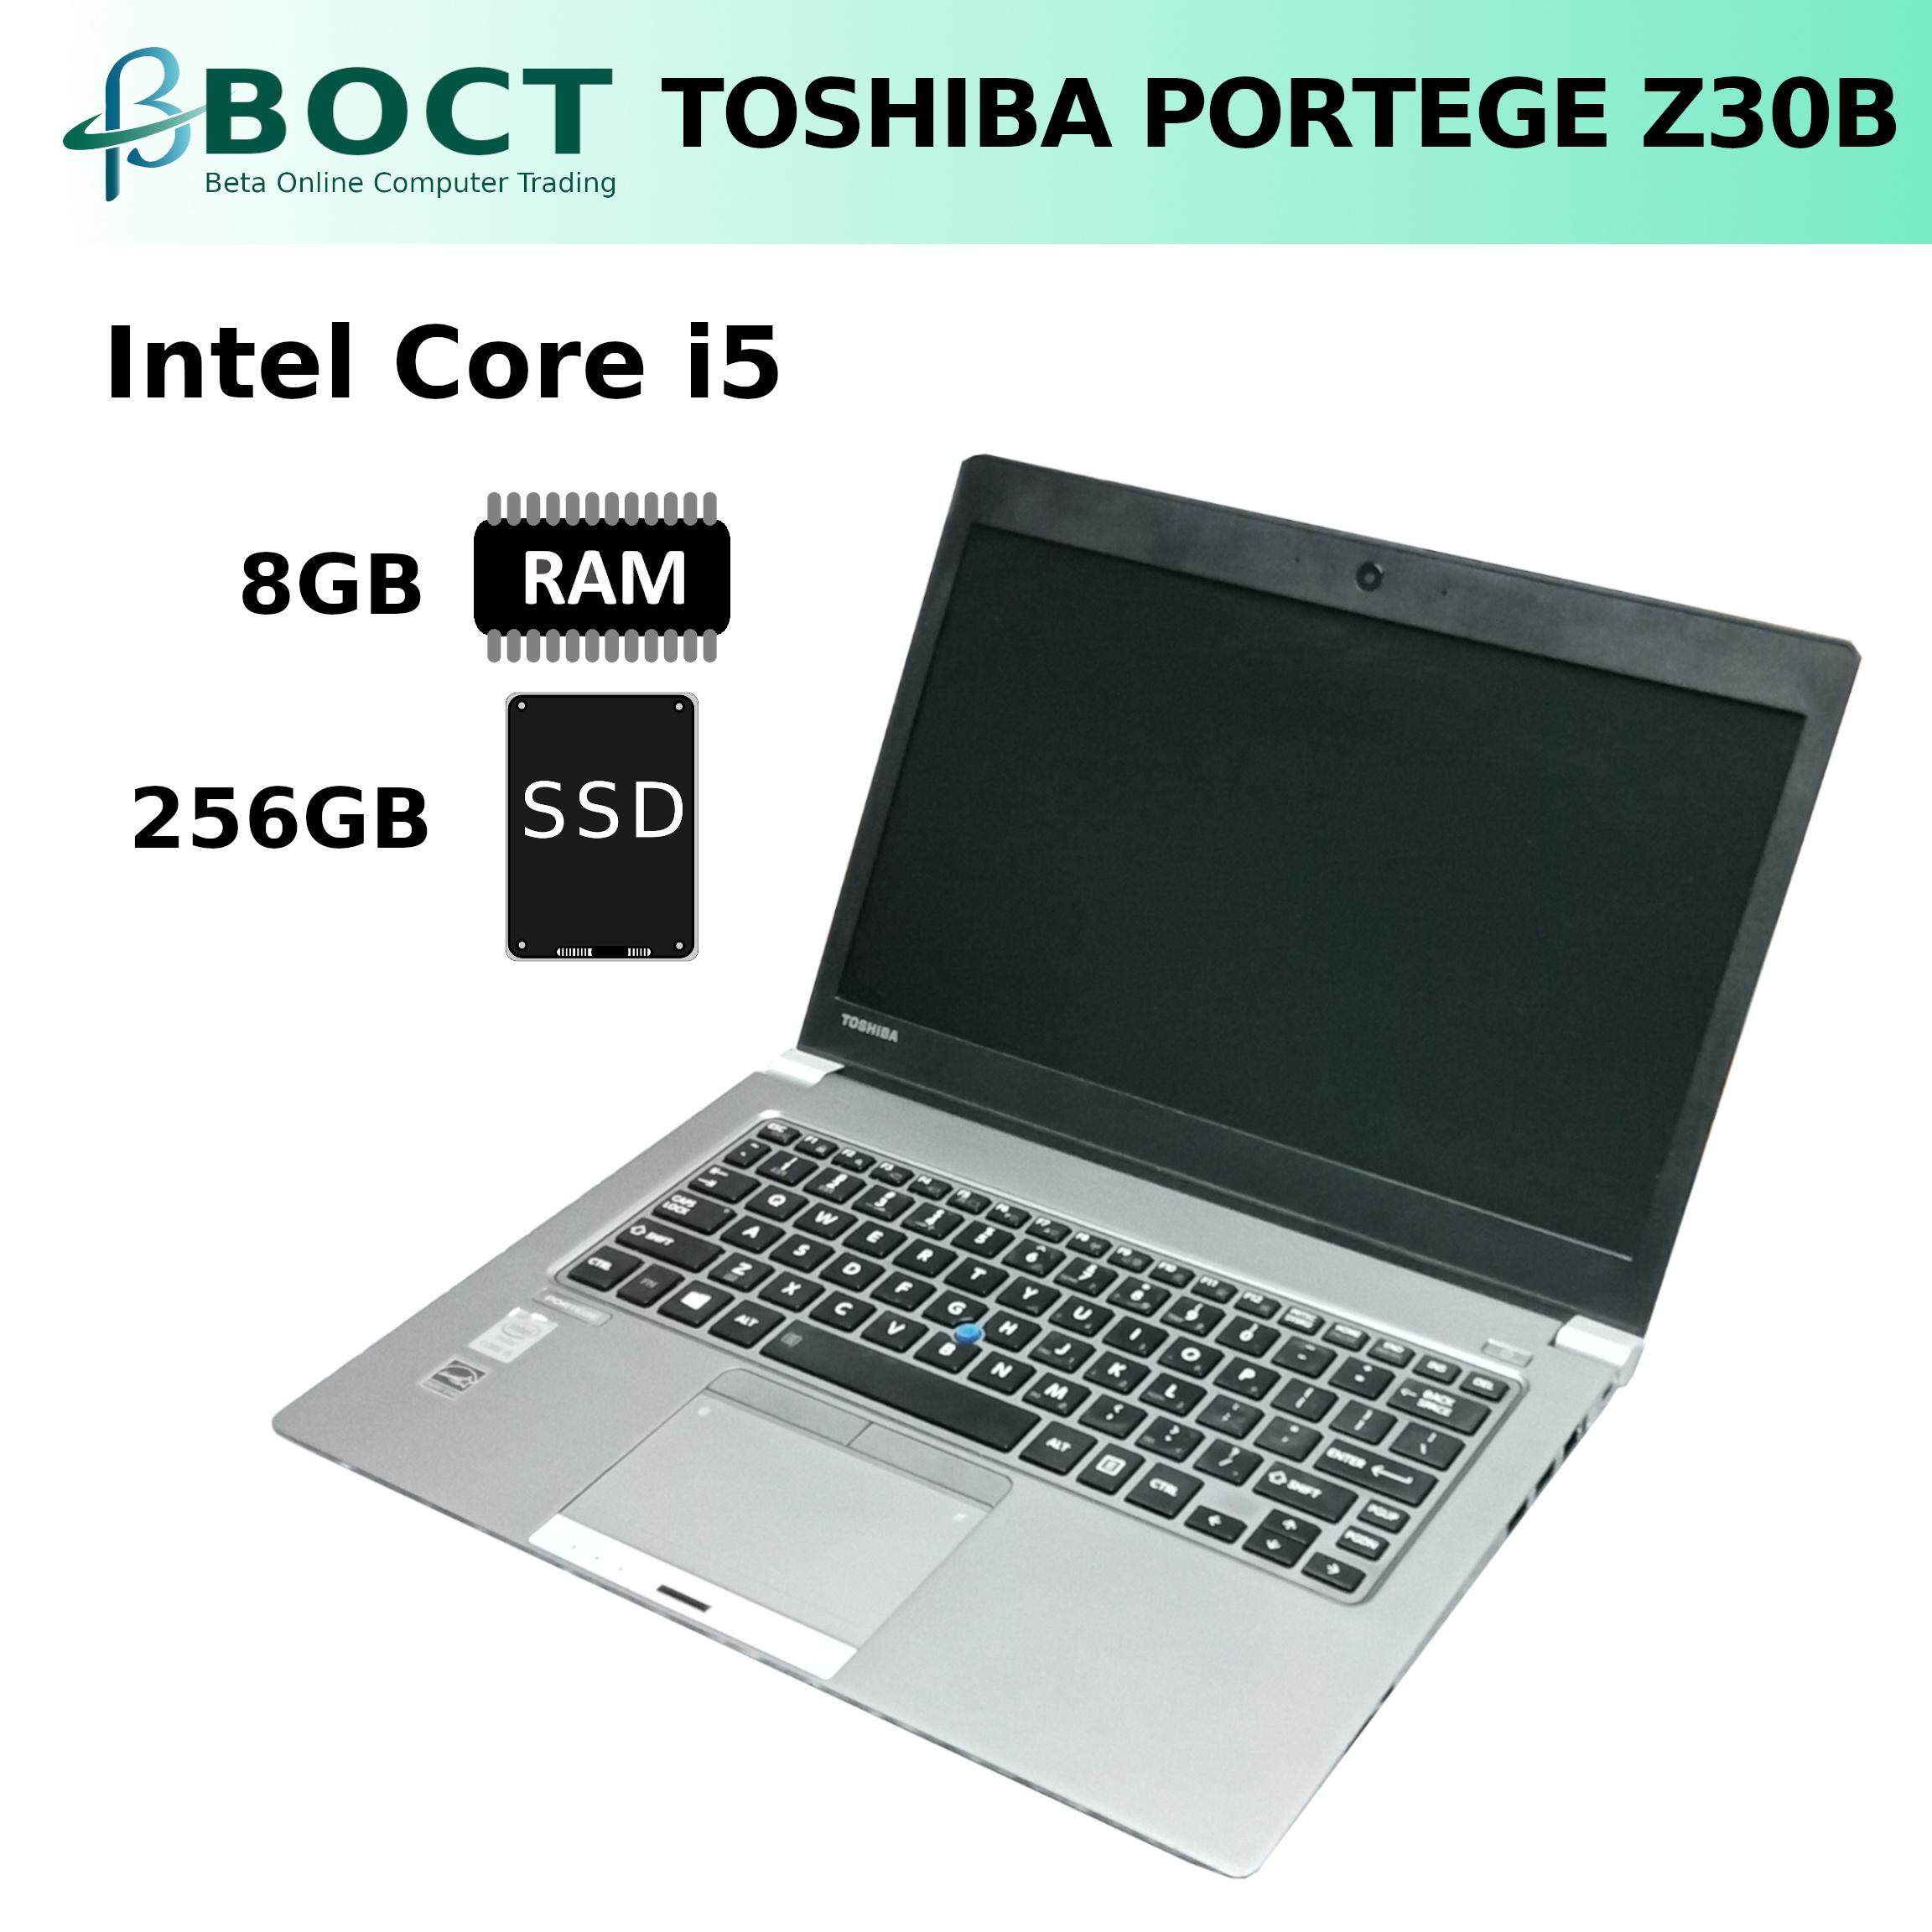 Toshiba Portege Z30B laptop / Core i5-5200U / 8GB / 256GB SSD / Dual Band Wireless a/b/g/n/ac (Refurbished) /W10P Malaysia